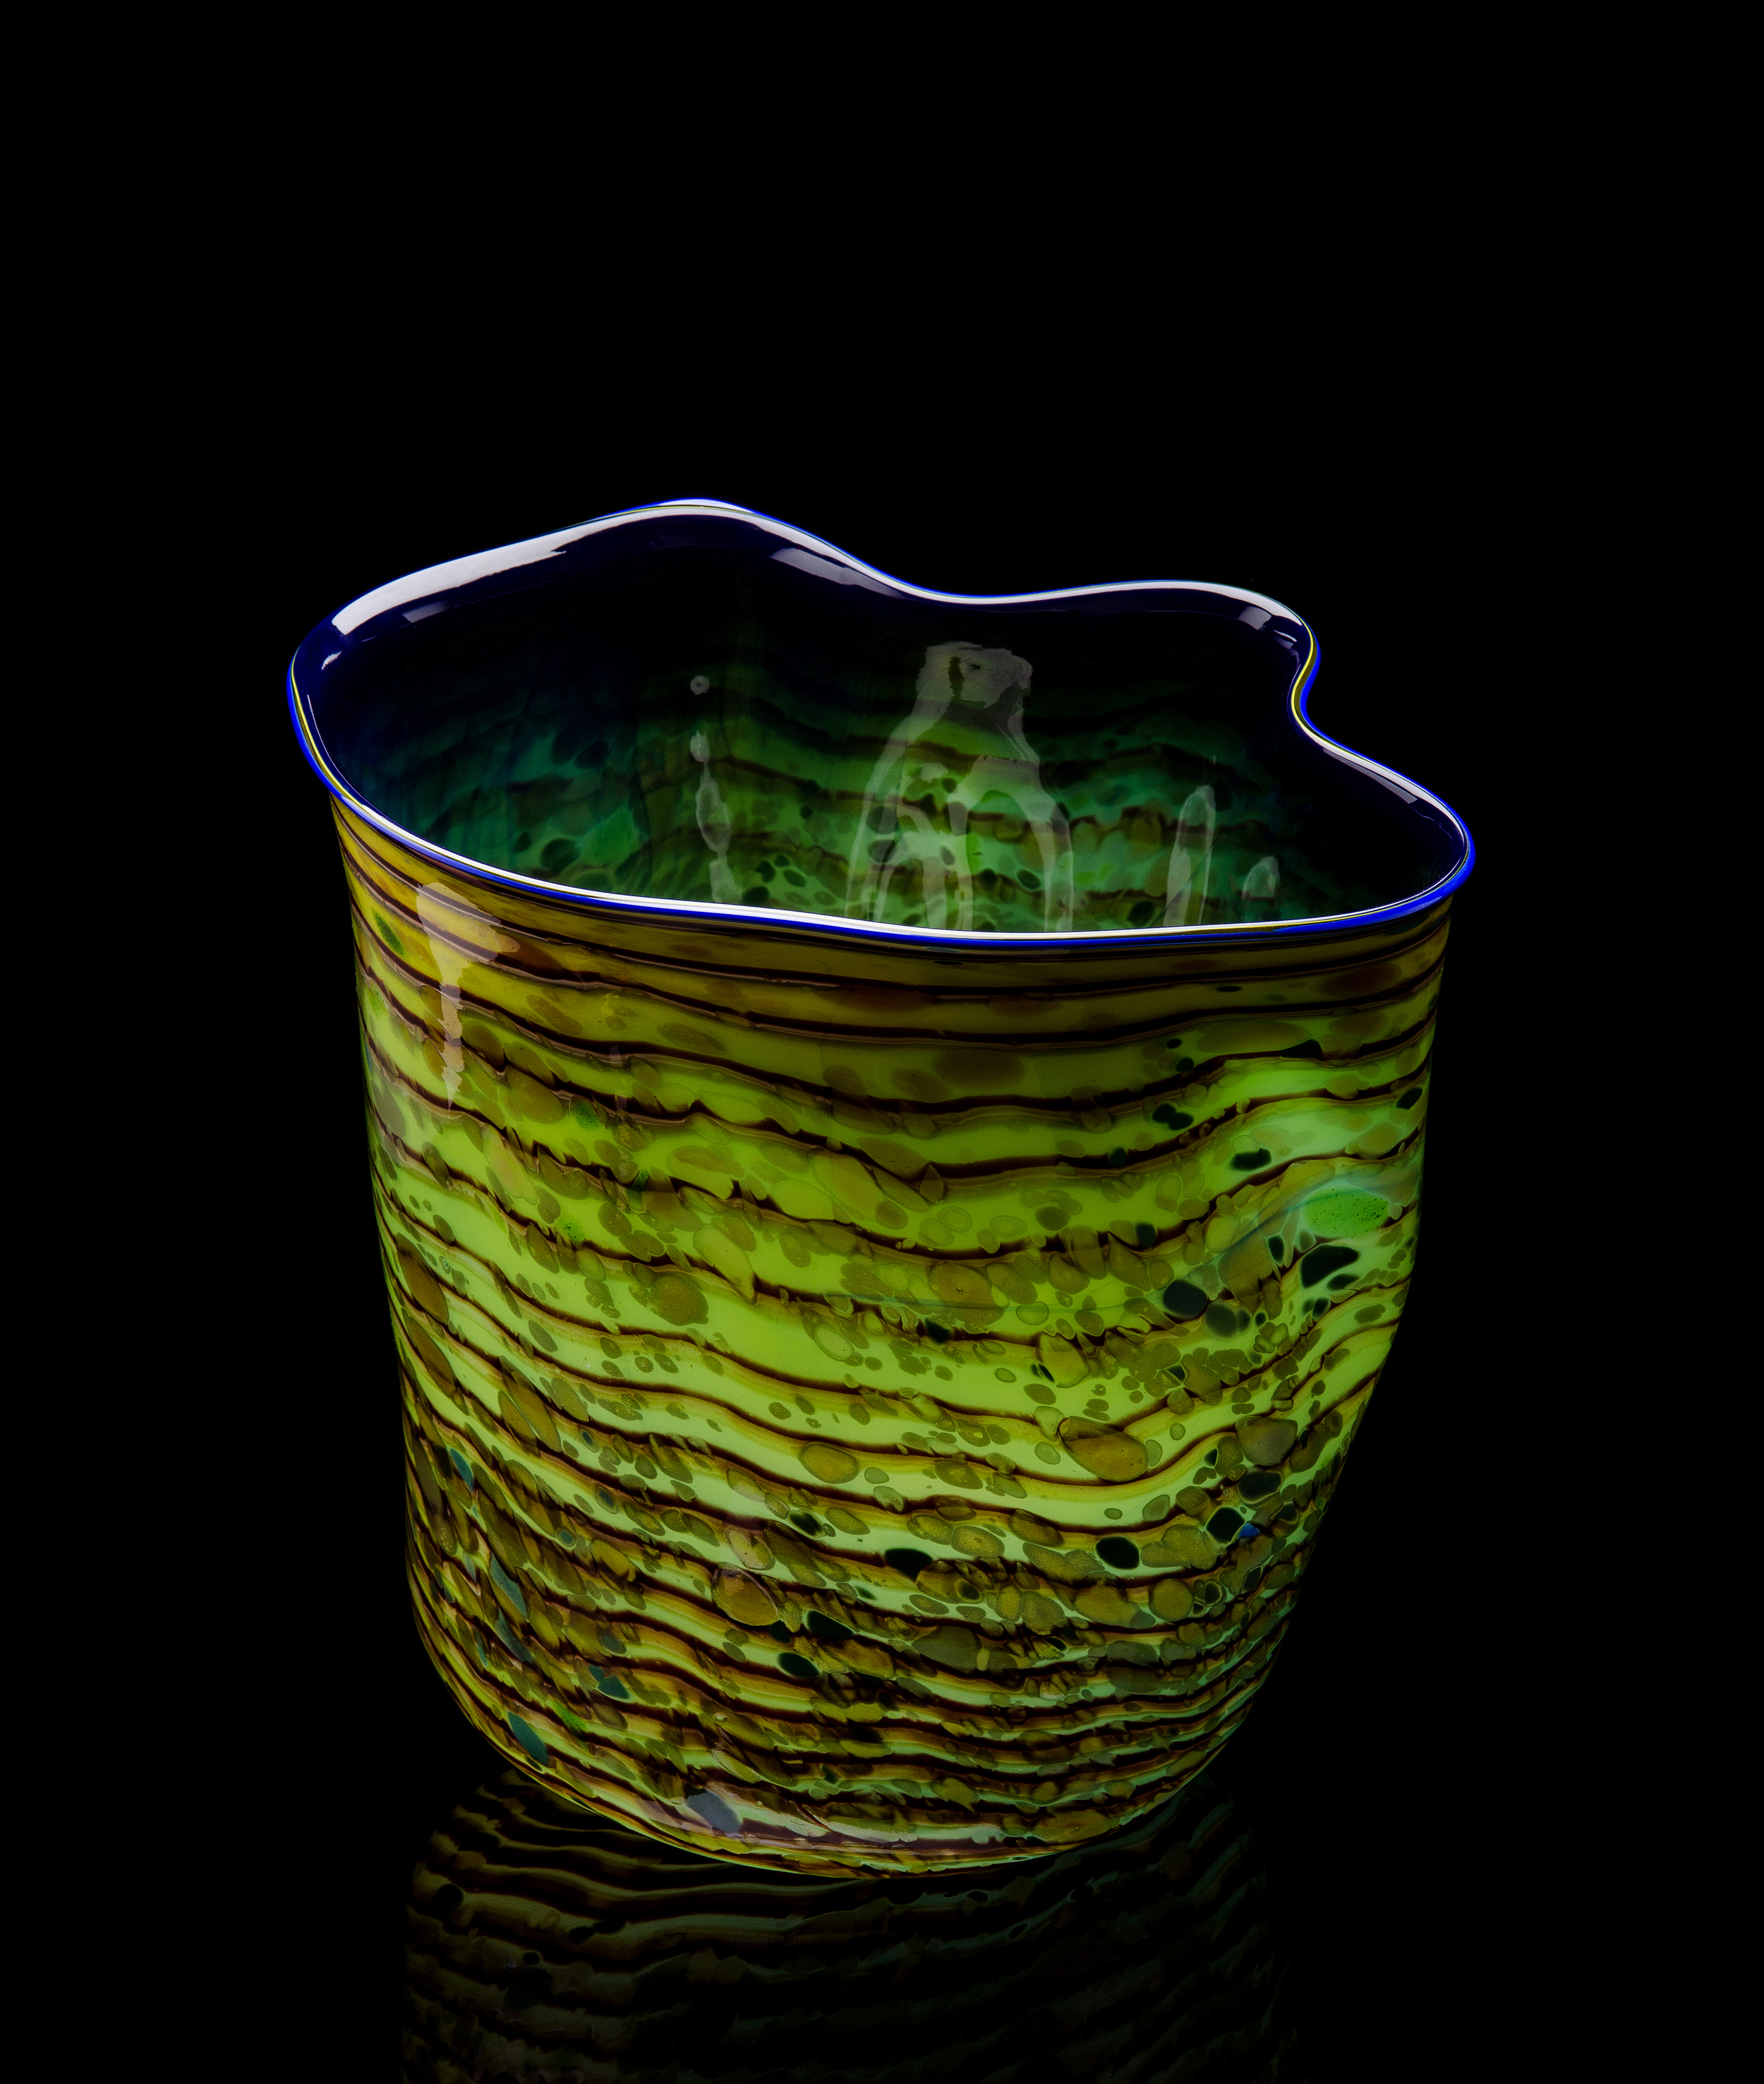 Dale Chihuly,  Yellow Green Macchia with Cerulean Lip Wrap   (1983, glass, 15 x 14 x 13 inches), DC.79